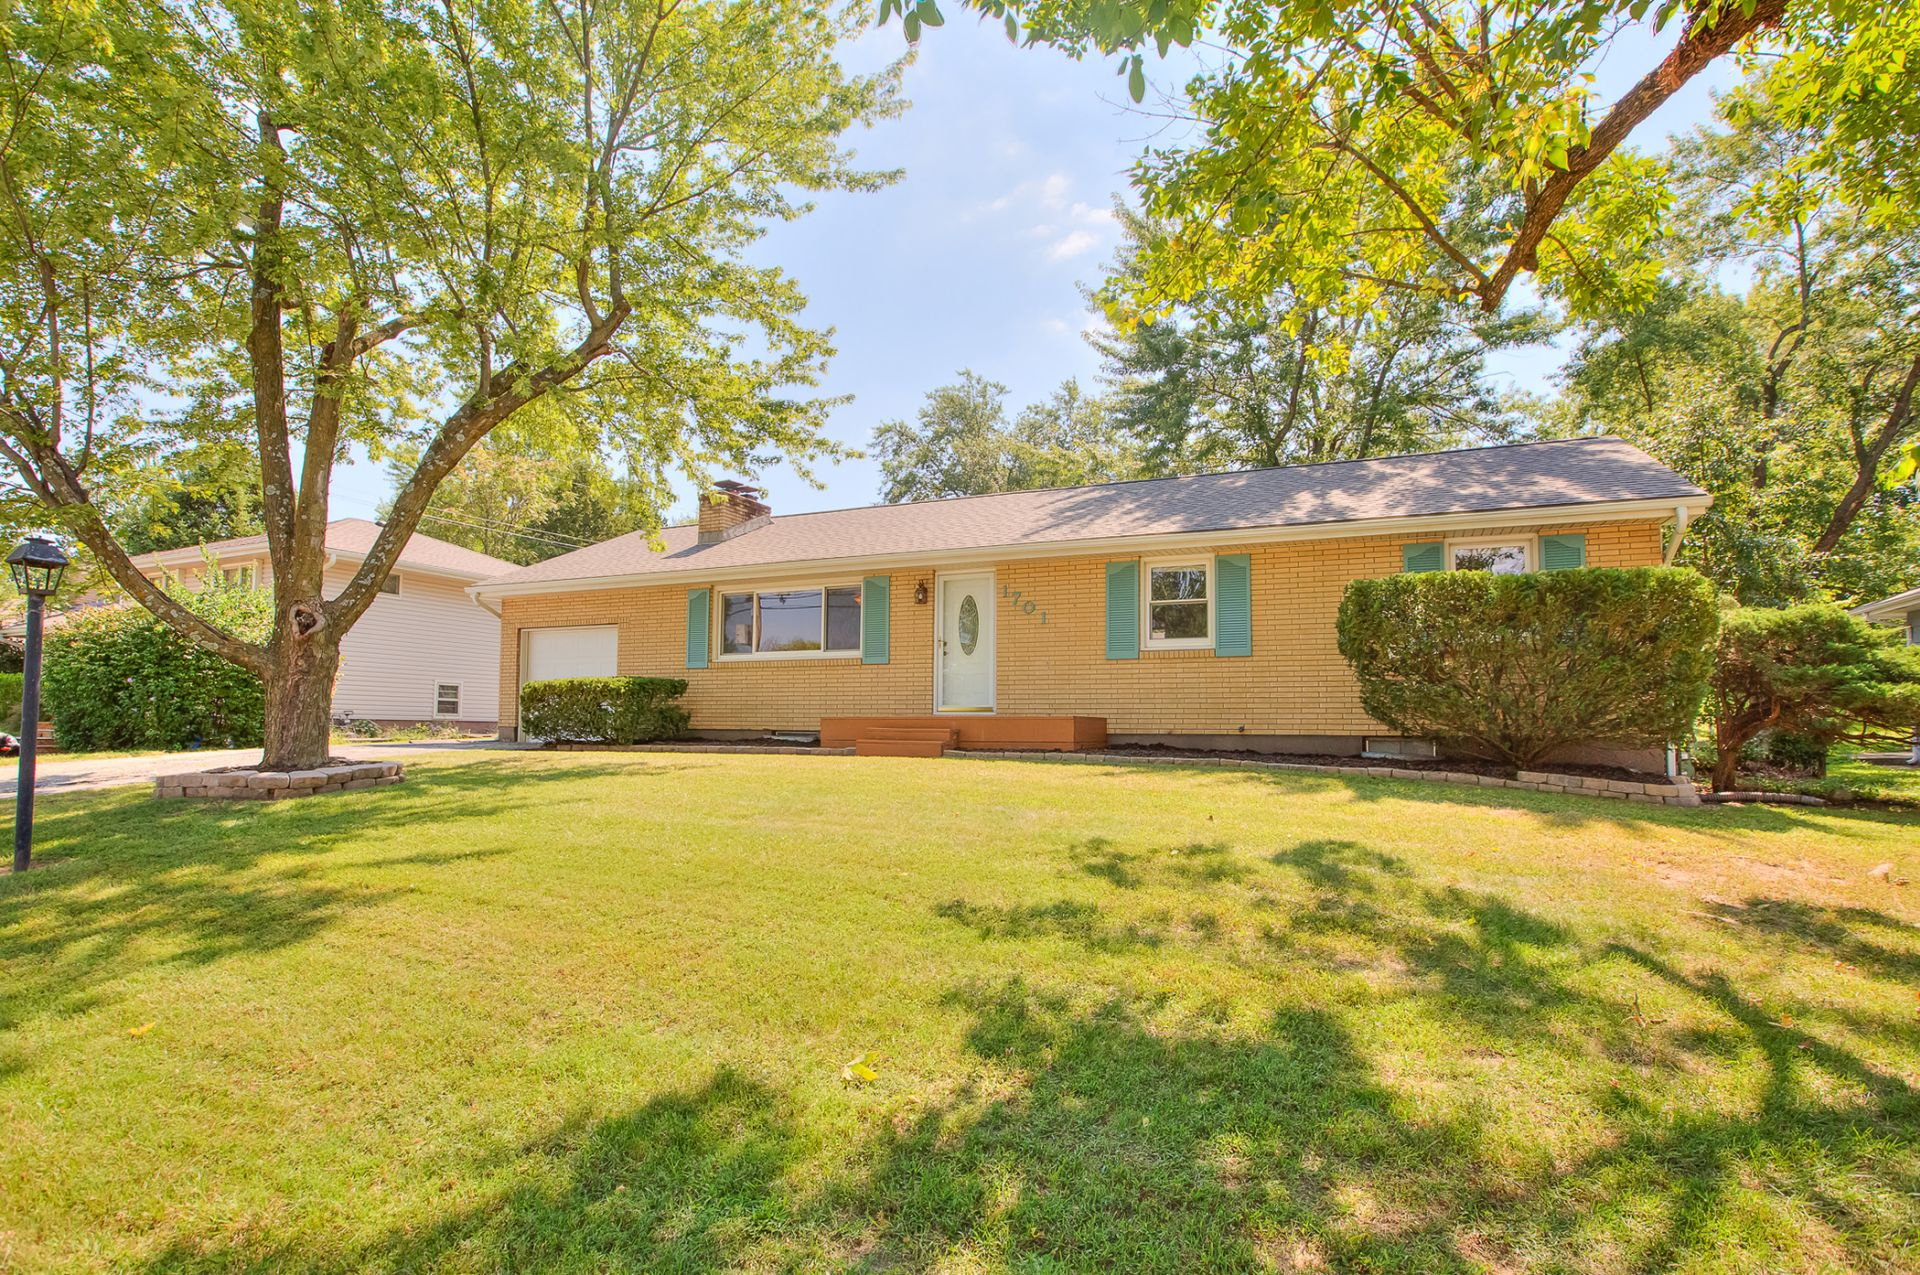 JUST LISTED with 2 OPEN HOUSES! Charming Move-In Ready True Ranch Home!